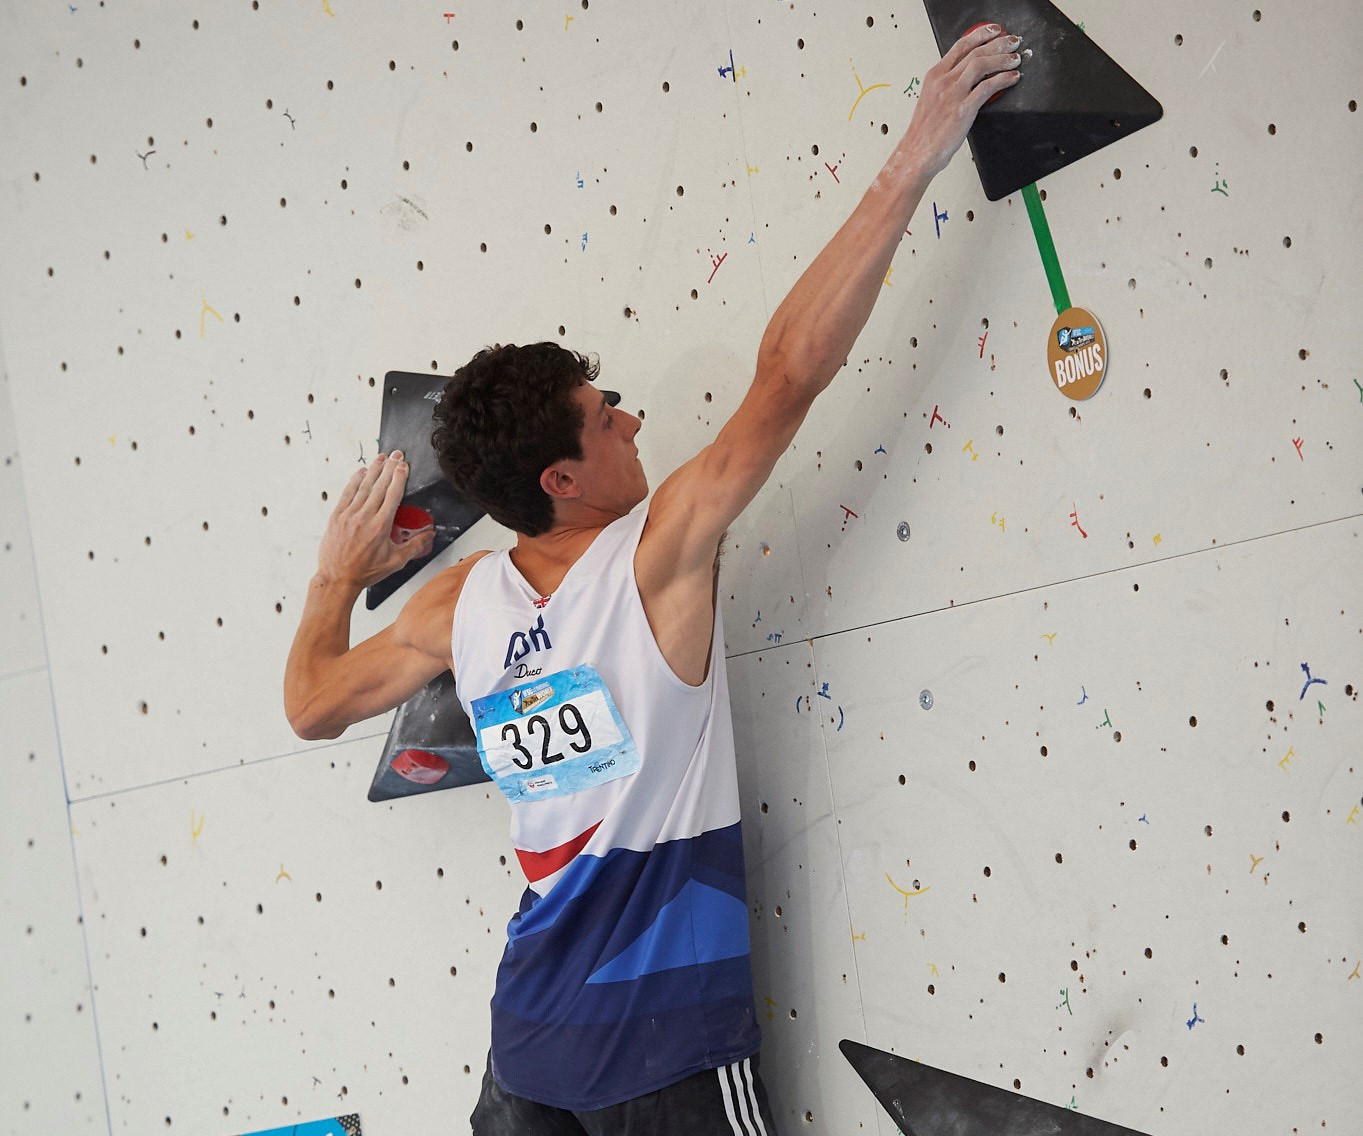 McArthur leads the way in junior qualification at IFSC World Youth Championships